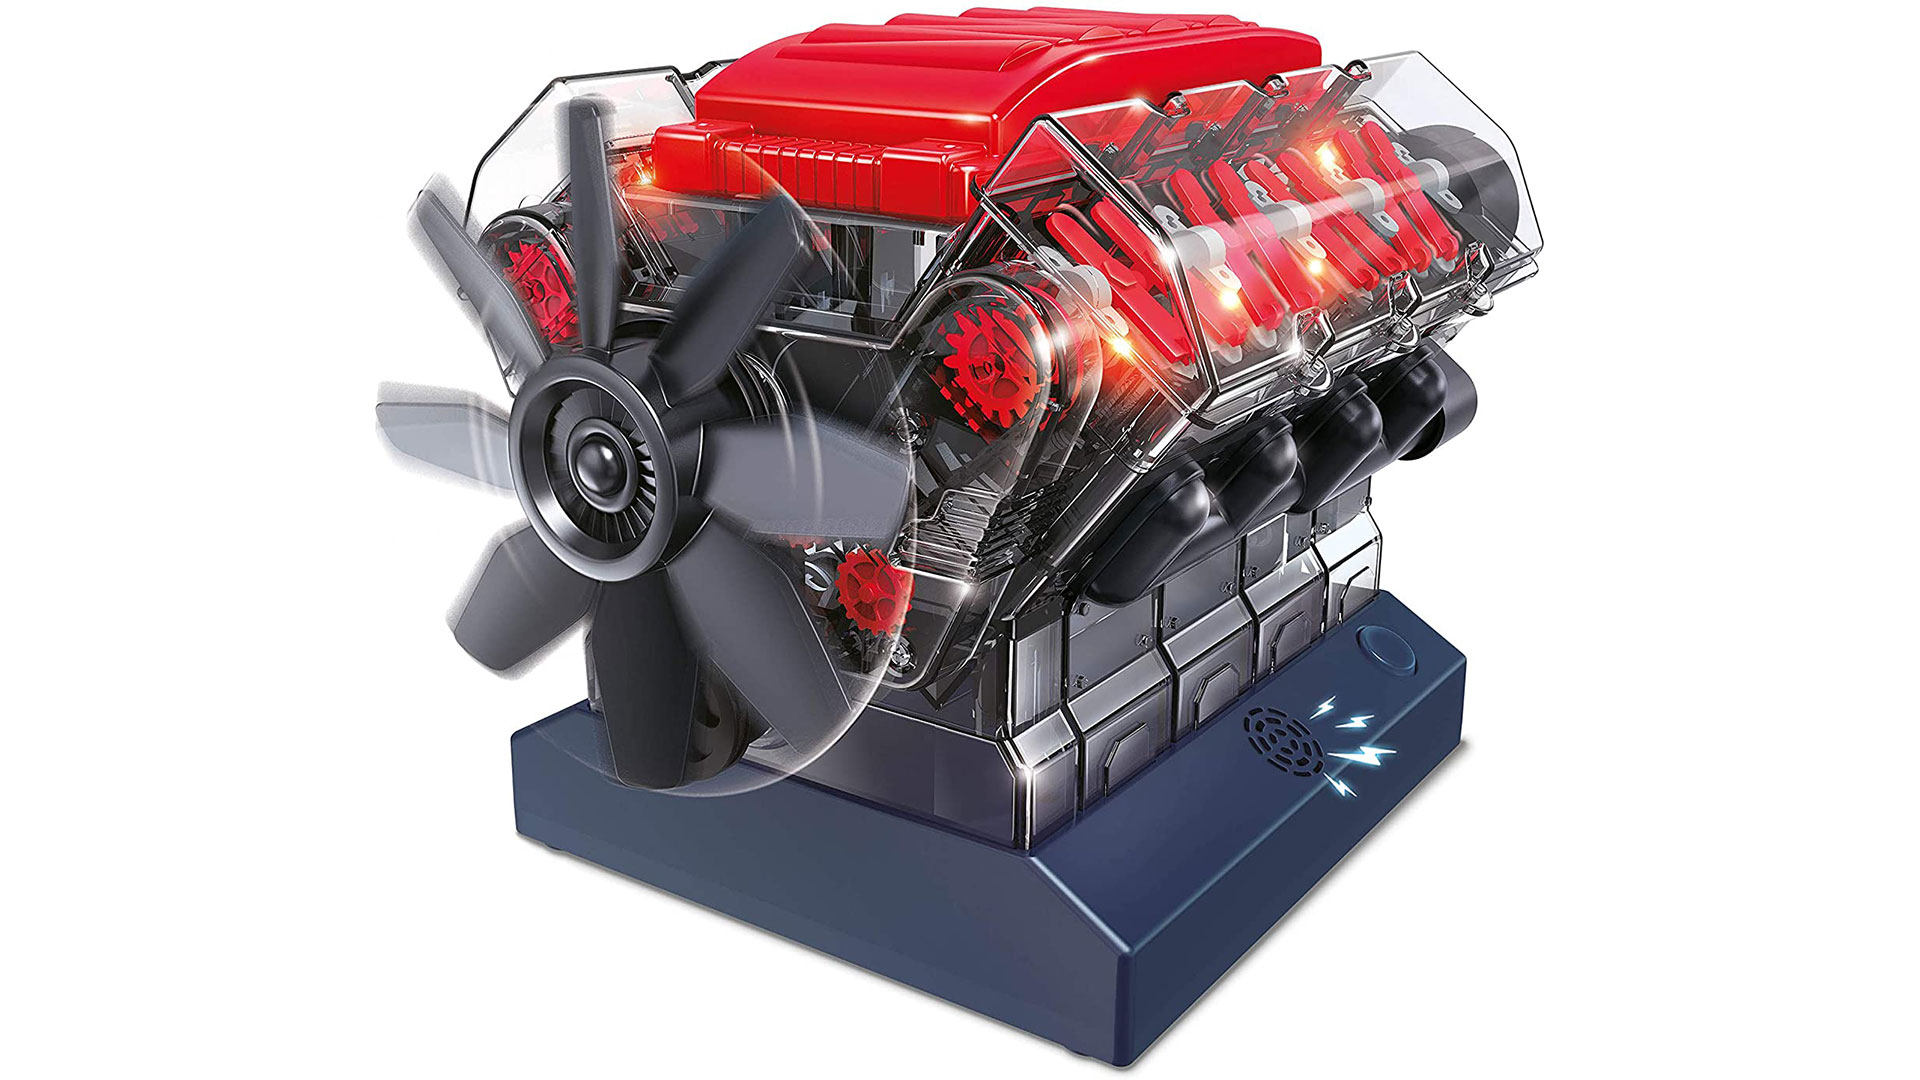 buki france v8 model engine